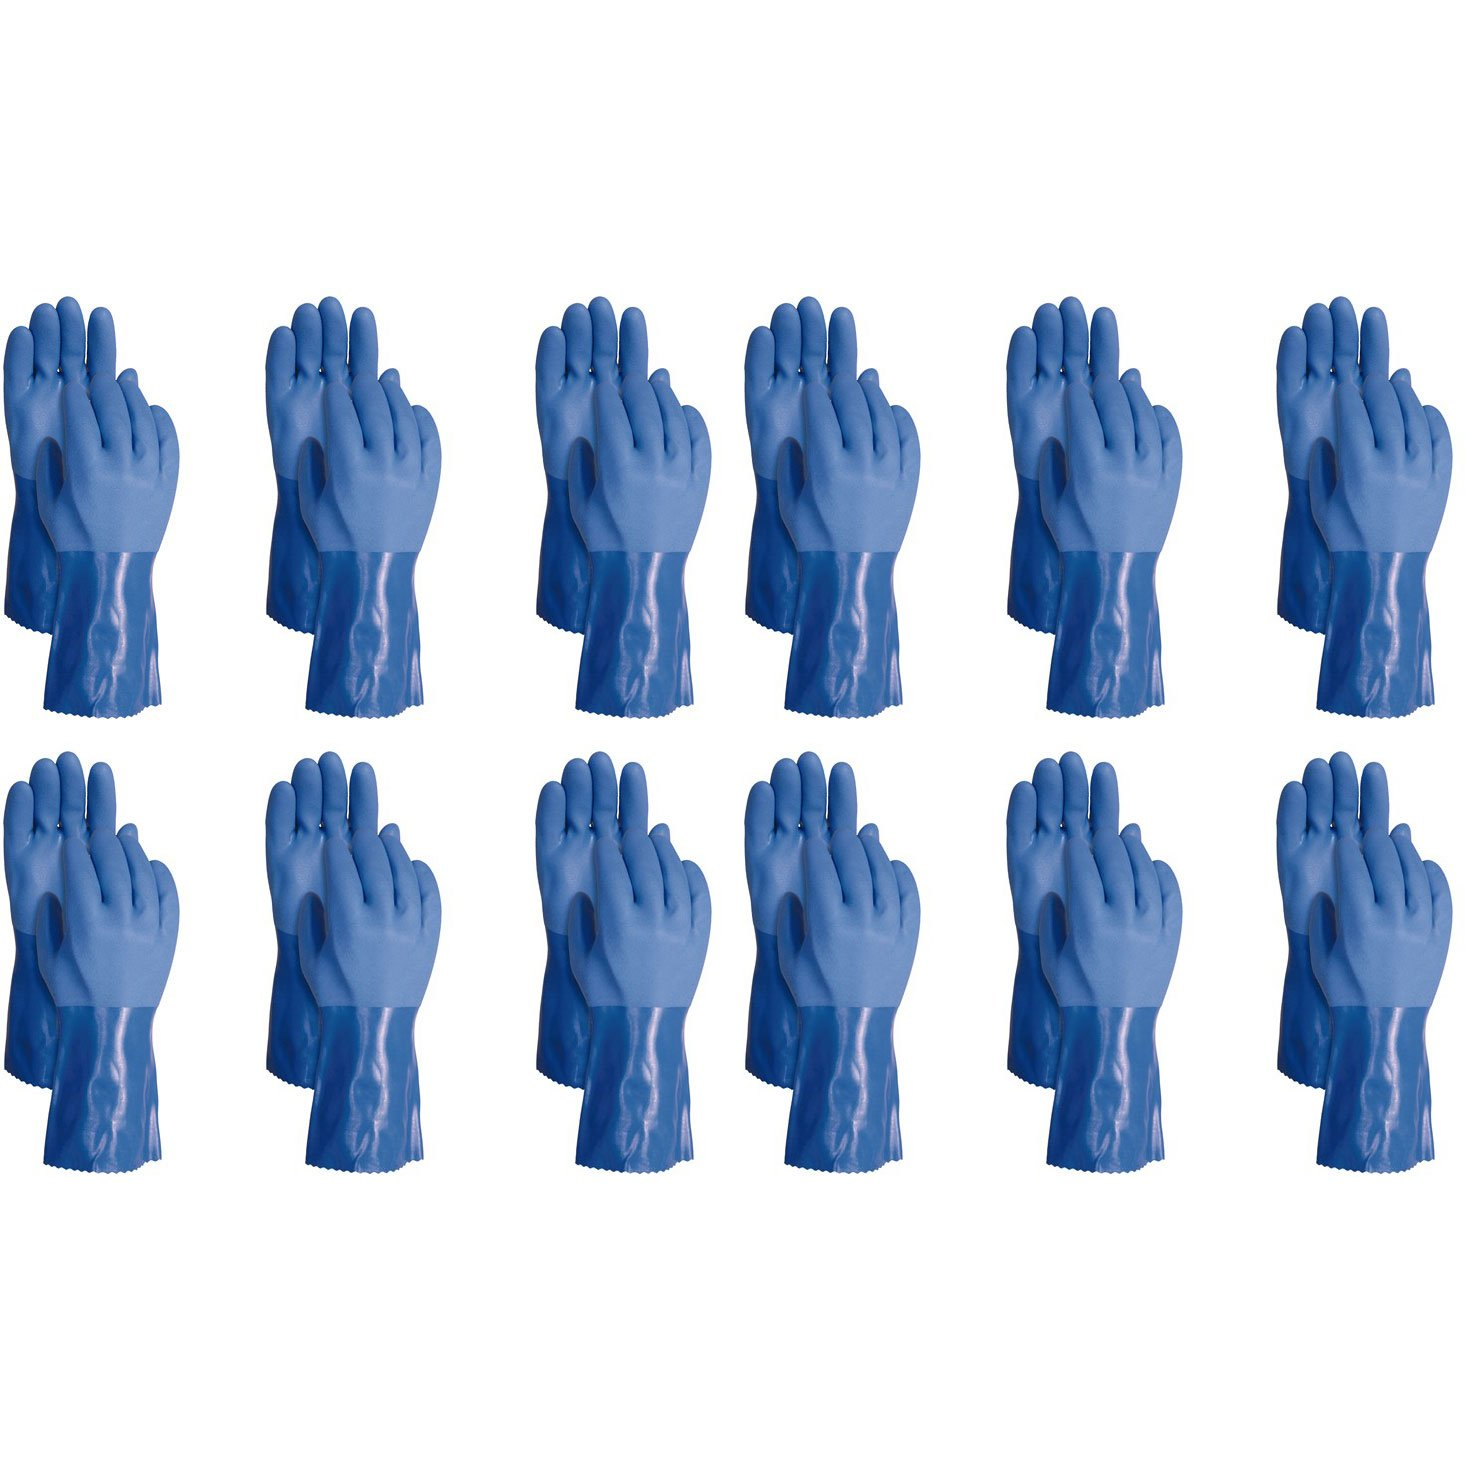 ATLAS 660 Vinylove Triple Dipped X-Large XL Textured PVC Work Gloves, 72-Pairs by Atlas (Image #1)